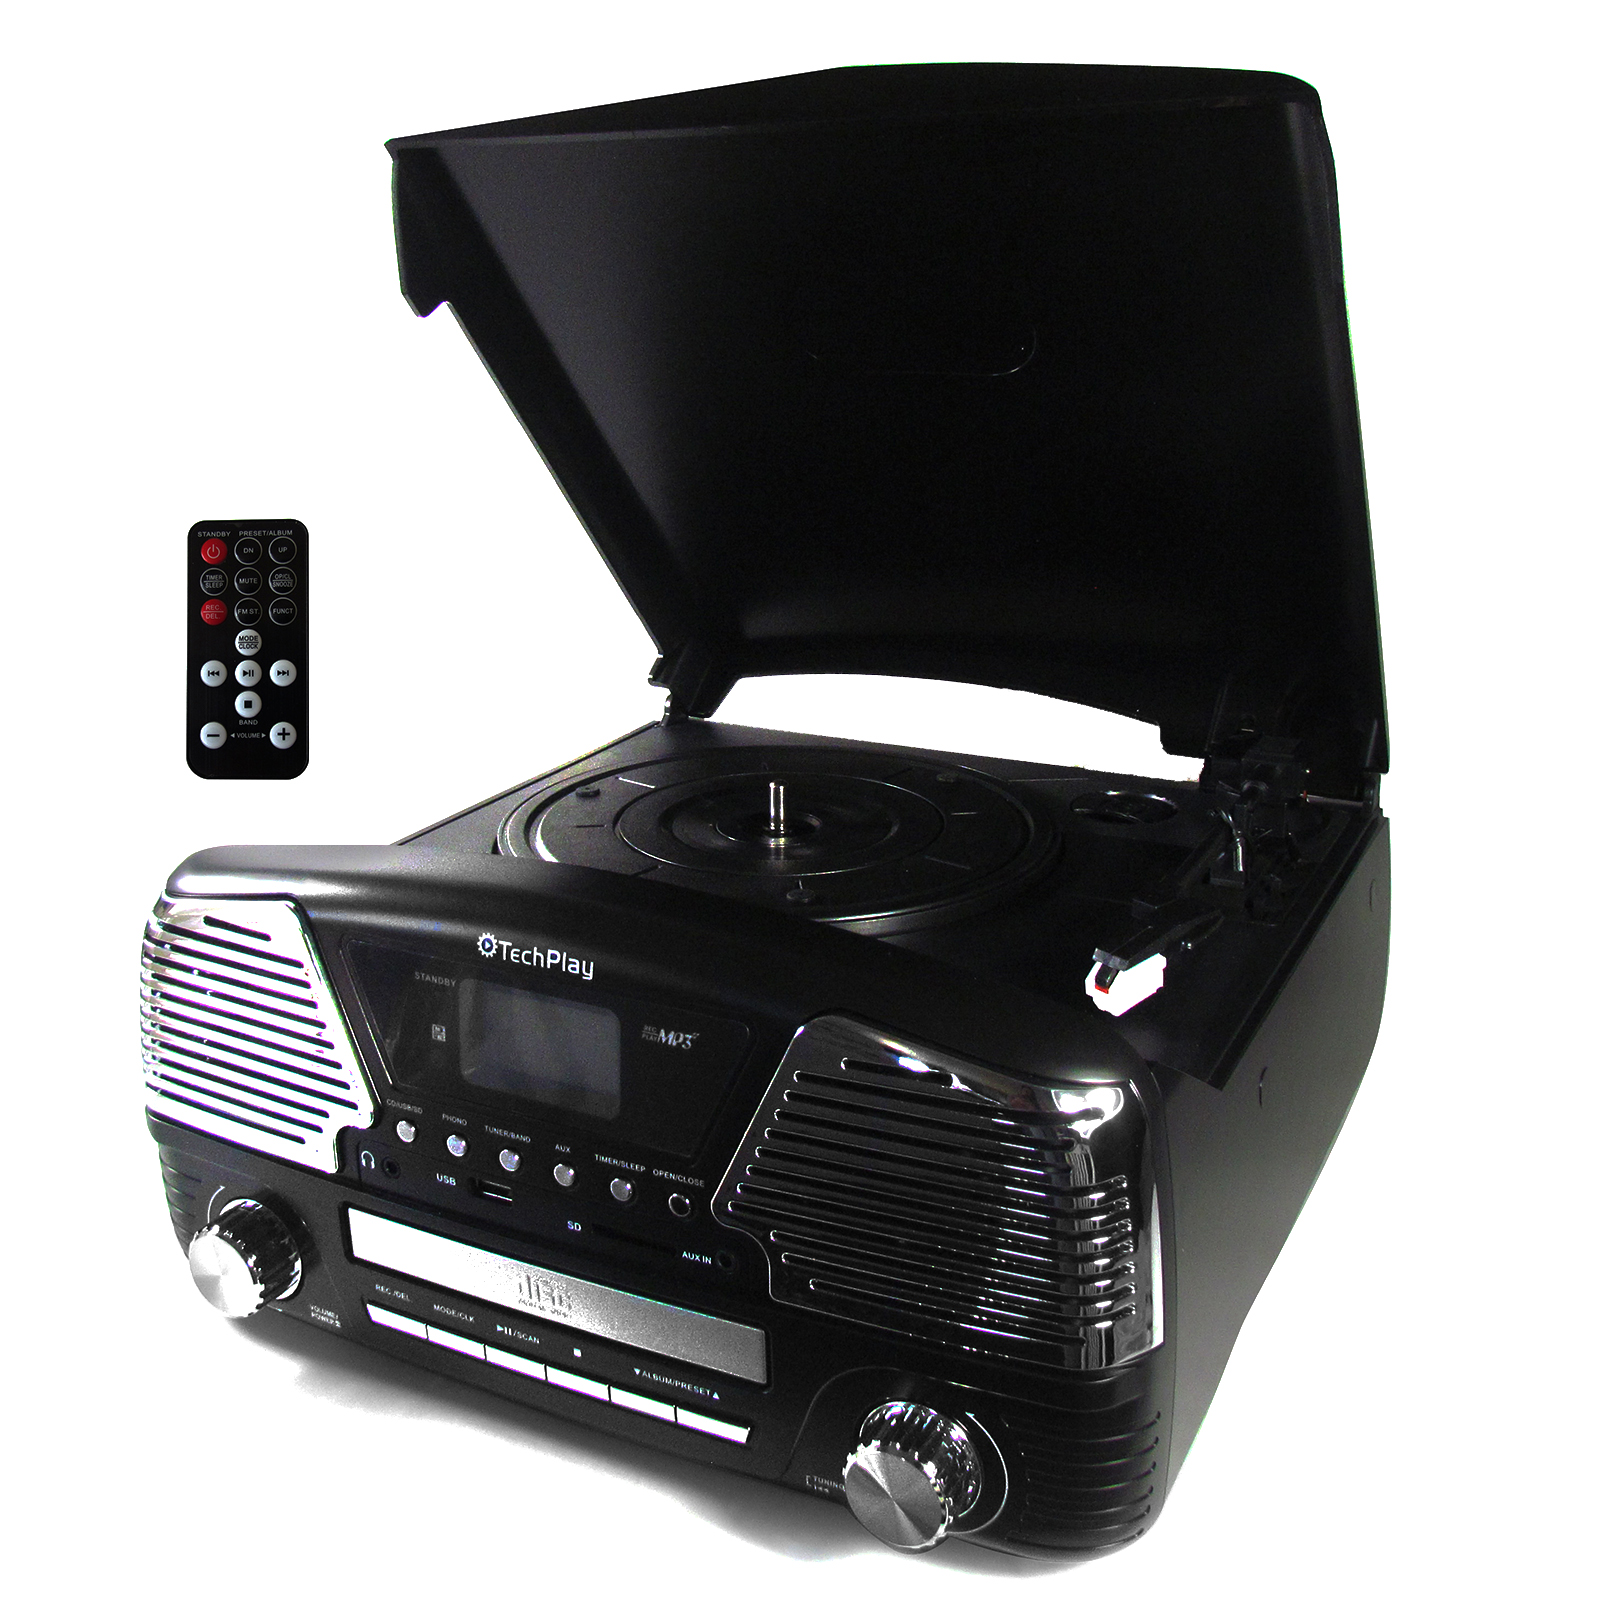 TechPlay 3 Speed BT Turntable, Programmable MP3 CD Player, USB/SD, Radio & Remote Control in Black